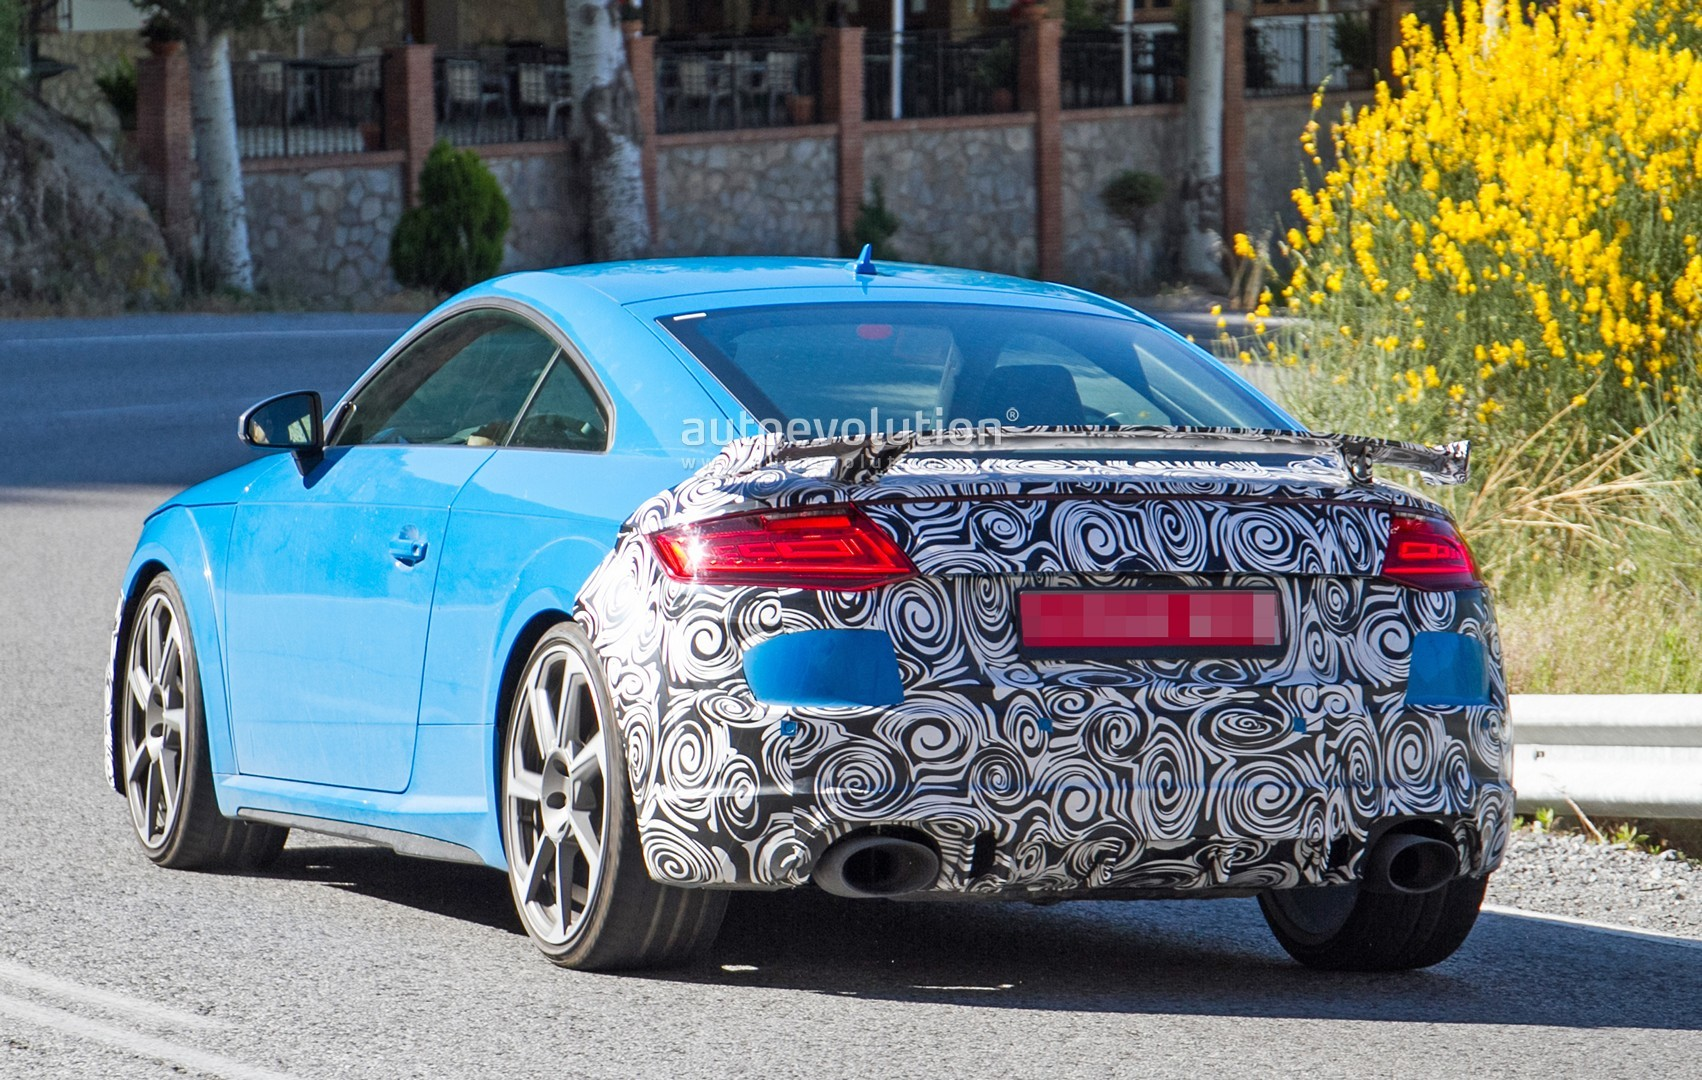 2019 Audi Tt Rs Spied With New Rs Look And Fresh Blue